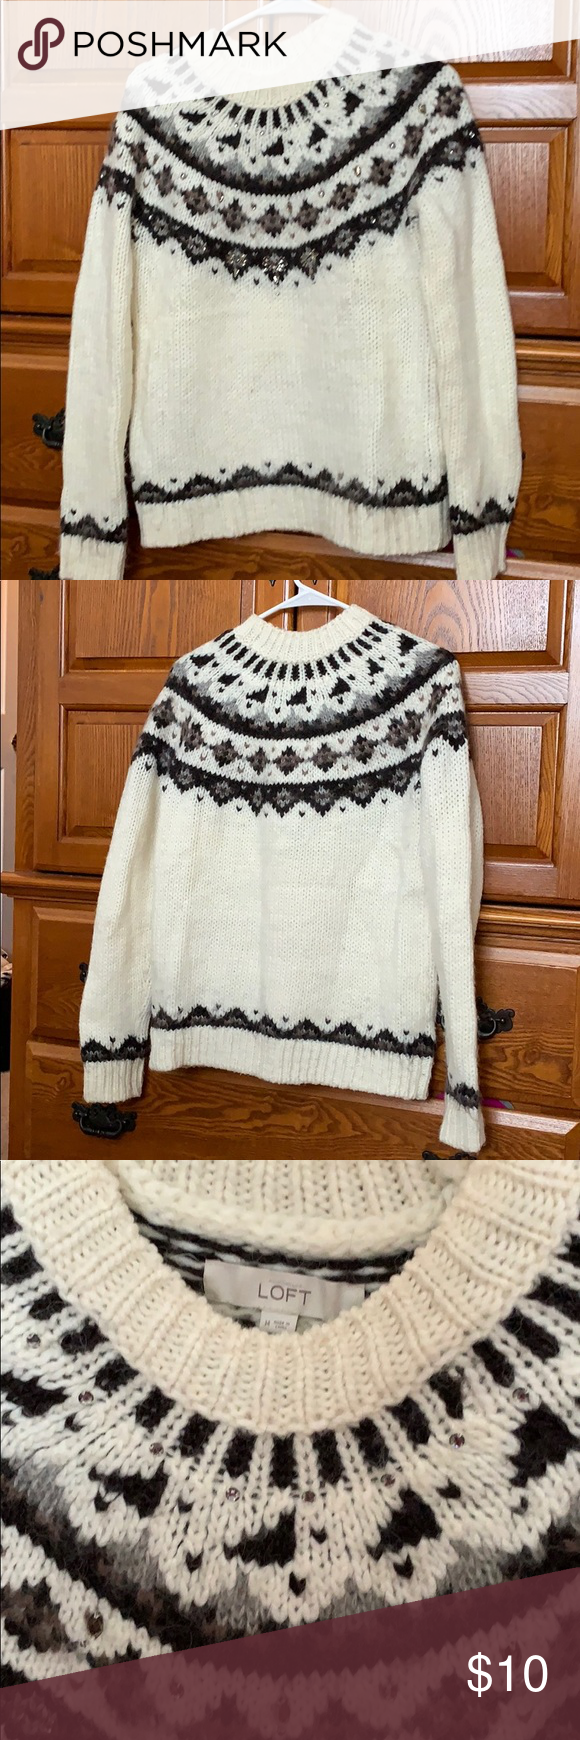 Loft beaded sweater Ann Taylor Loft cream beaded sweater with dark brown and black stripping. Some wear from use and wash, but no rips, holes, or tears. Would be super cute with some skinny jeans and ankle boots! LOFT Sweaters Crew & Scoop Necks #skinnyjeansandankleboots Loft beaded sweater Ann Taylor Loft cream beaded sweater with dark brown and black stripping. Some wear from use and wash, but no rips, holes, or tears. Would be super cute with some skinny jeans and ankle boots! LOFT Sweaters C #skinnyjeansandankleboots